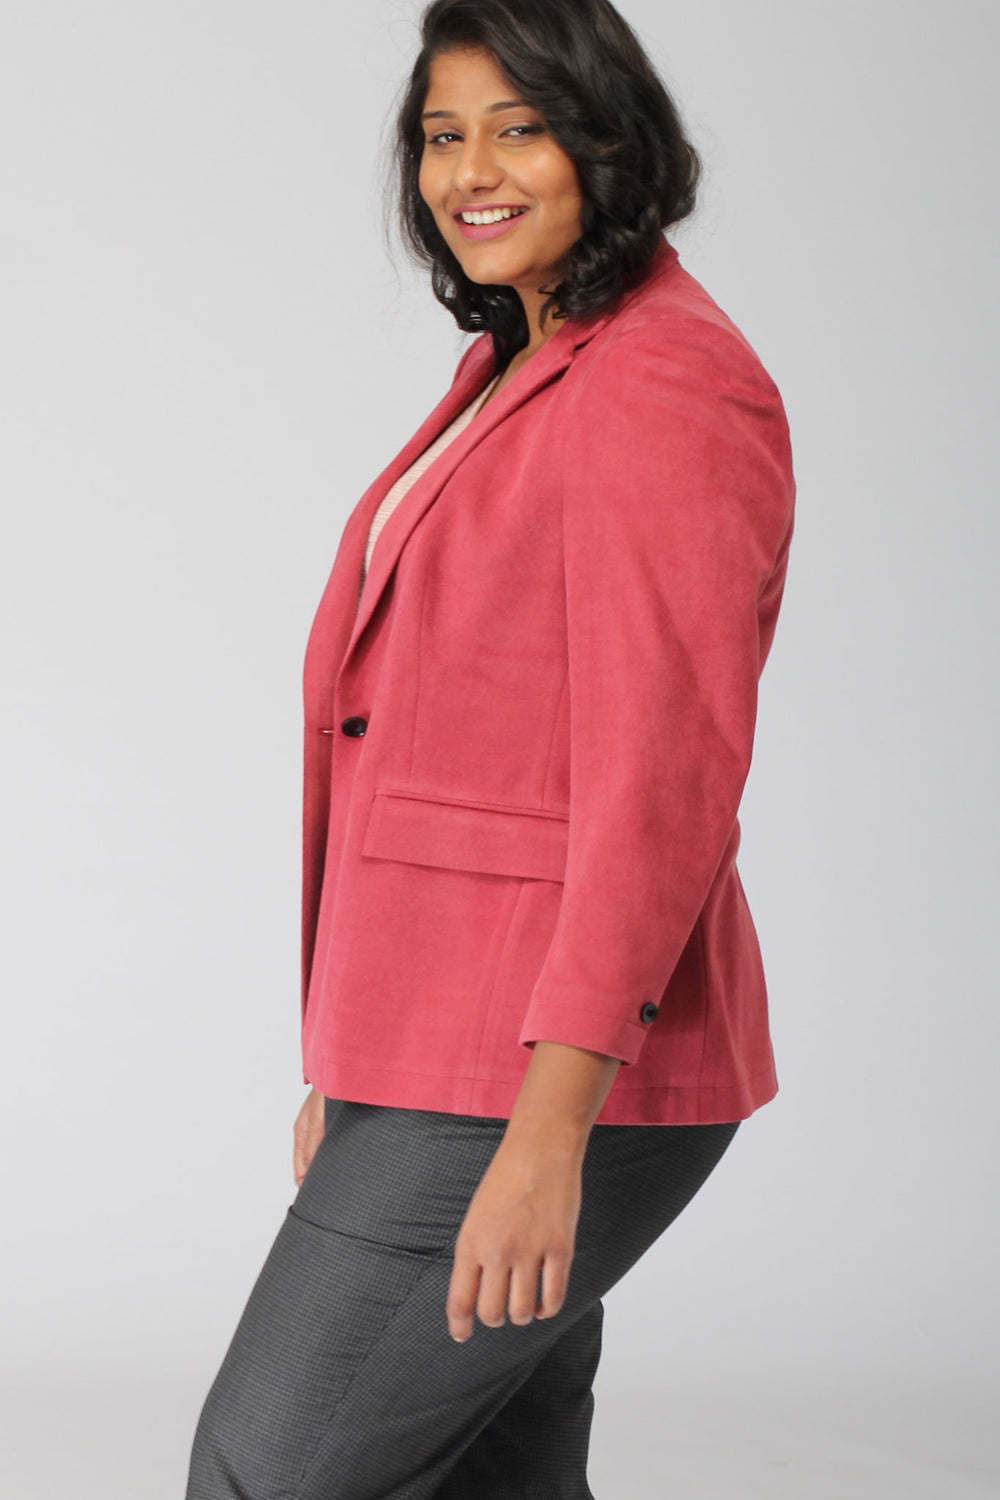 Geneva Punch Pink Jacket